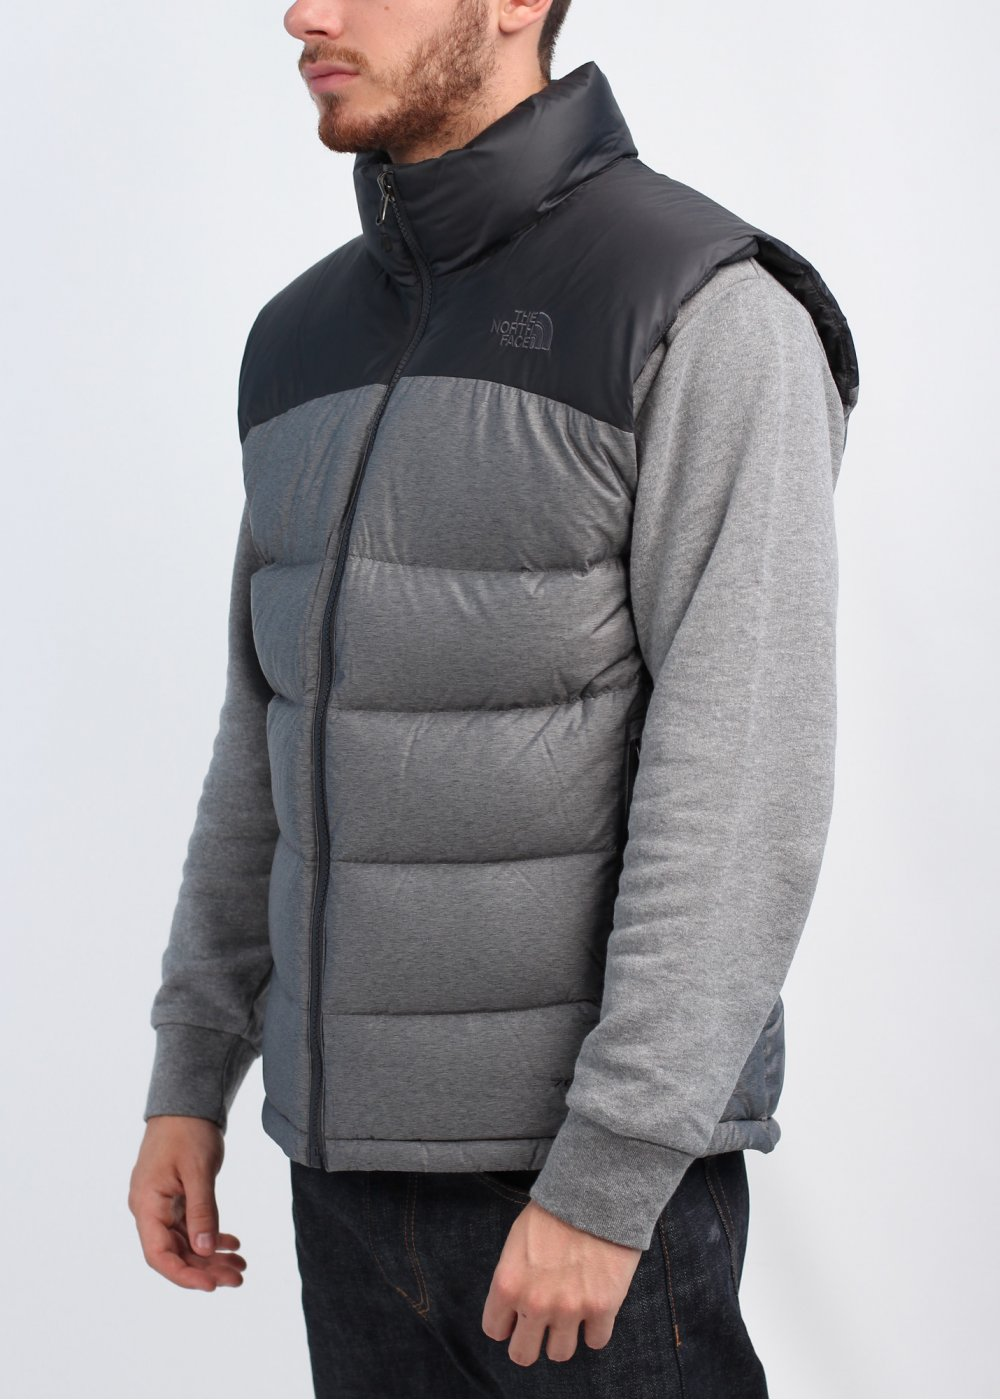 Shop the latest The North Face jackets, coats, clothing & gear at hereffiles5gs.gq